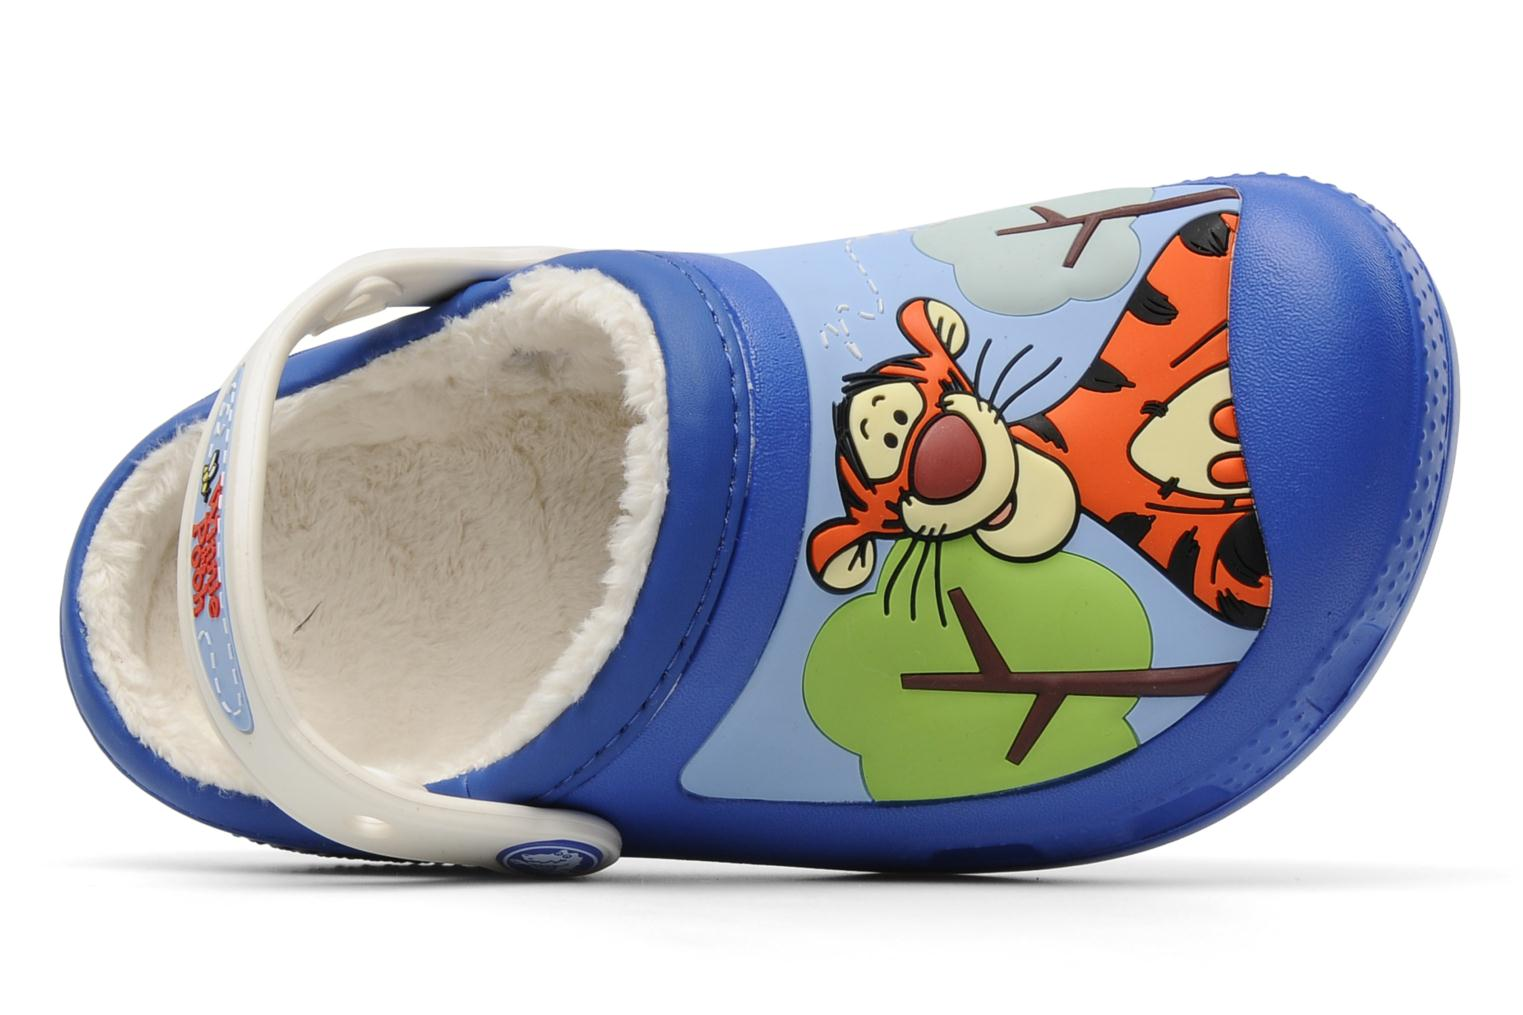 Winnie The Pooh & Eeyore Lined Clog Sea Blue-Oyster